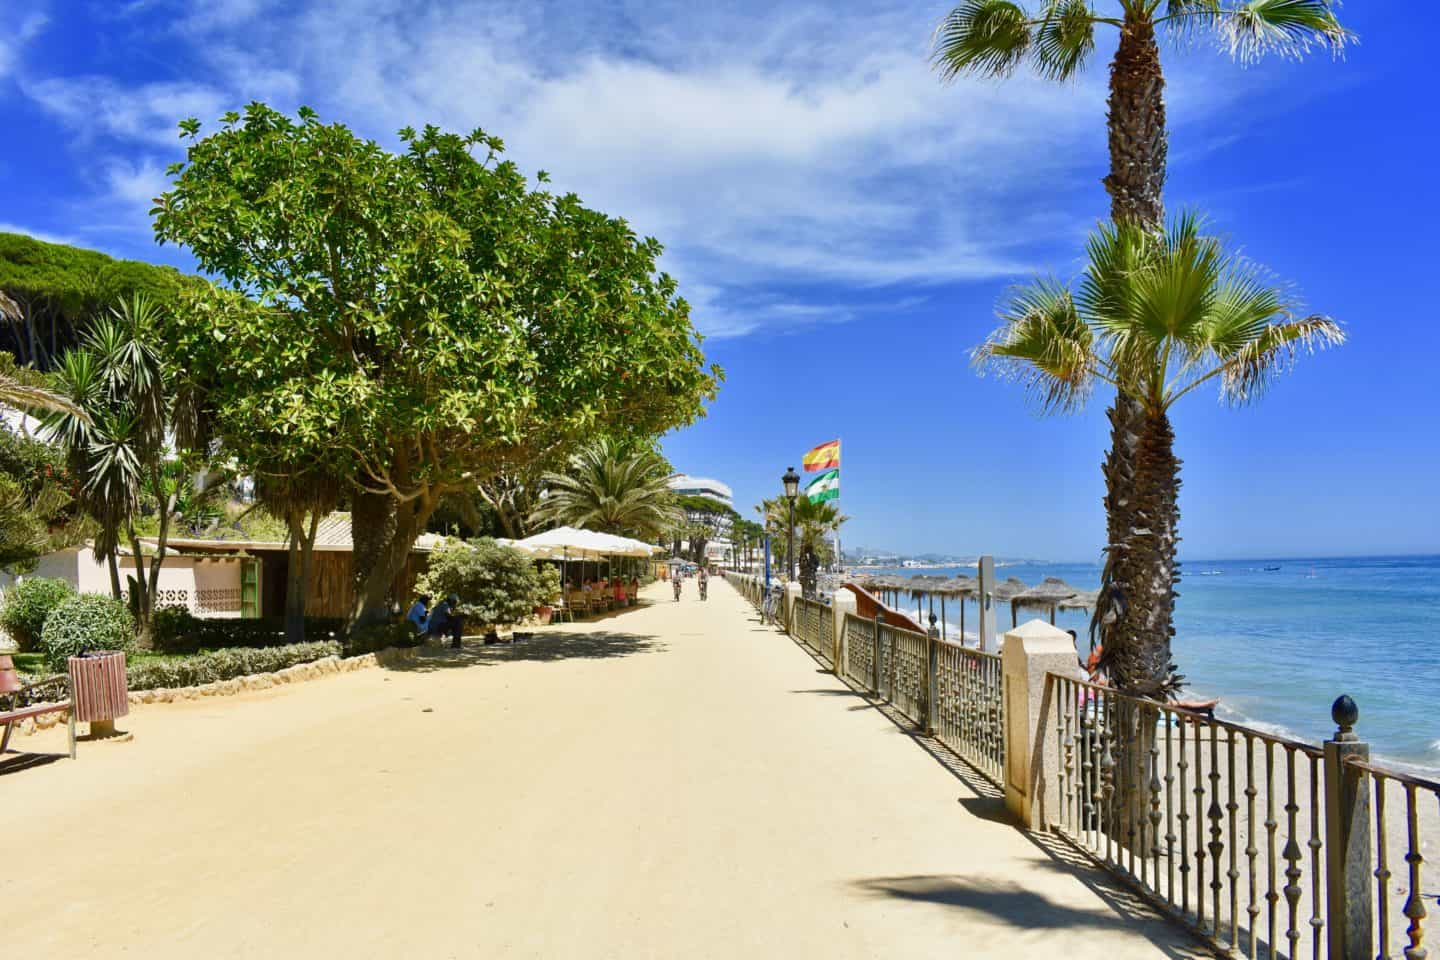 beaches in Marbella